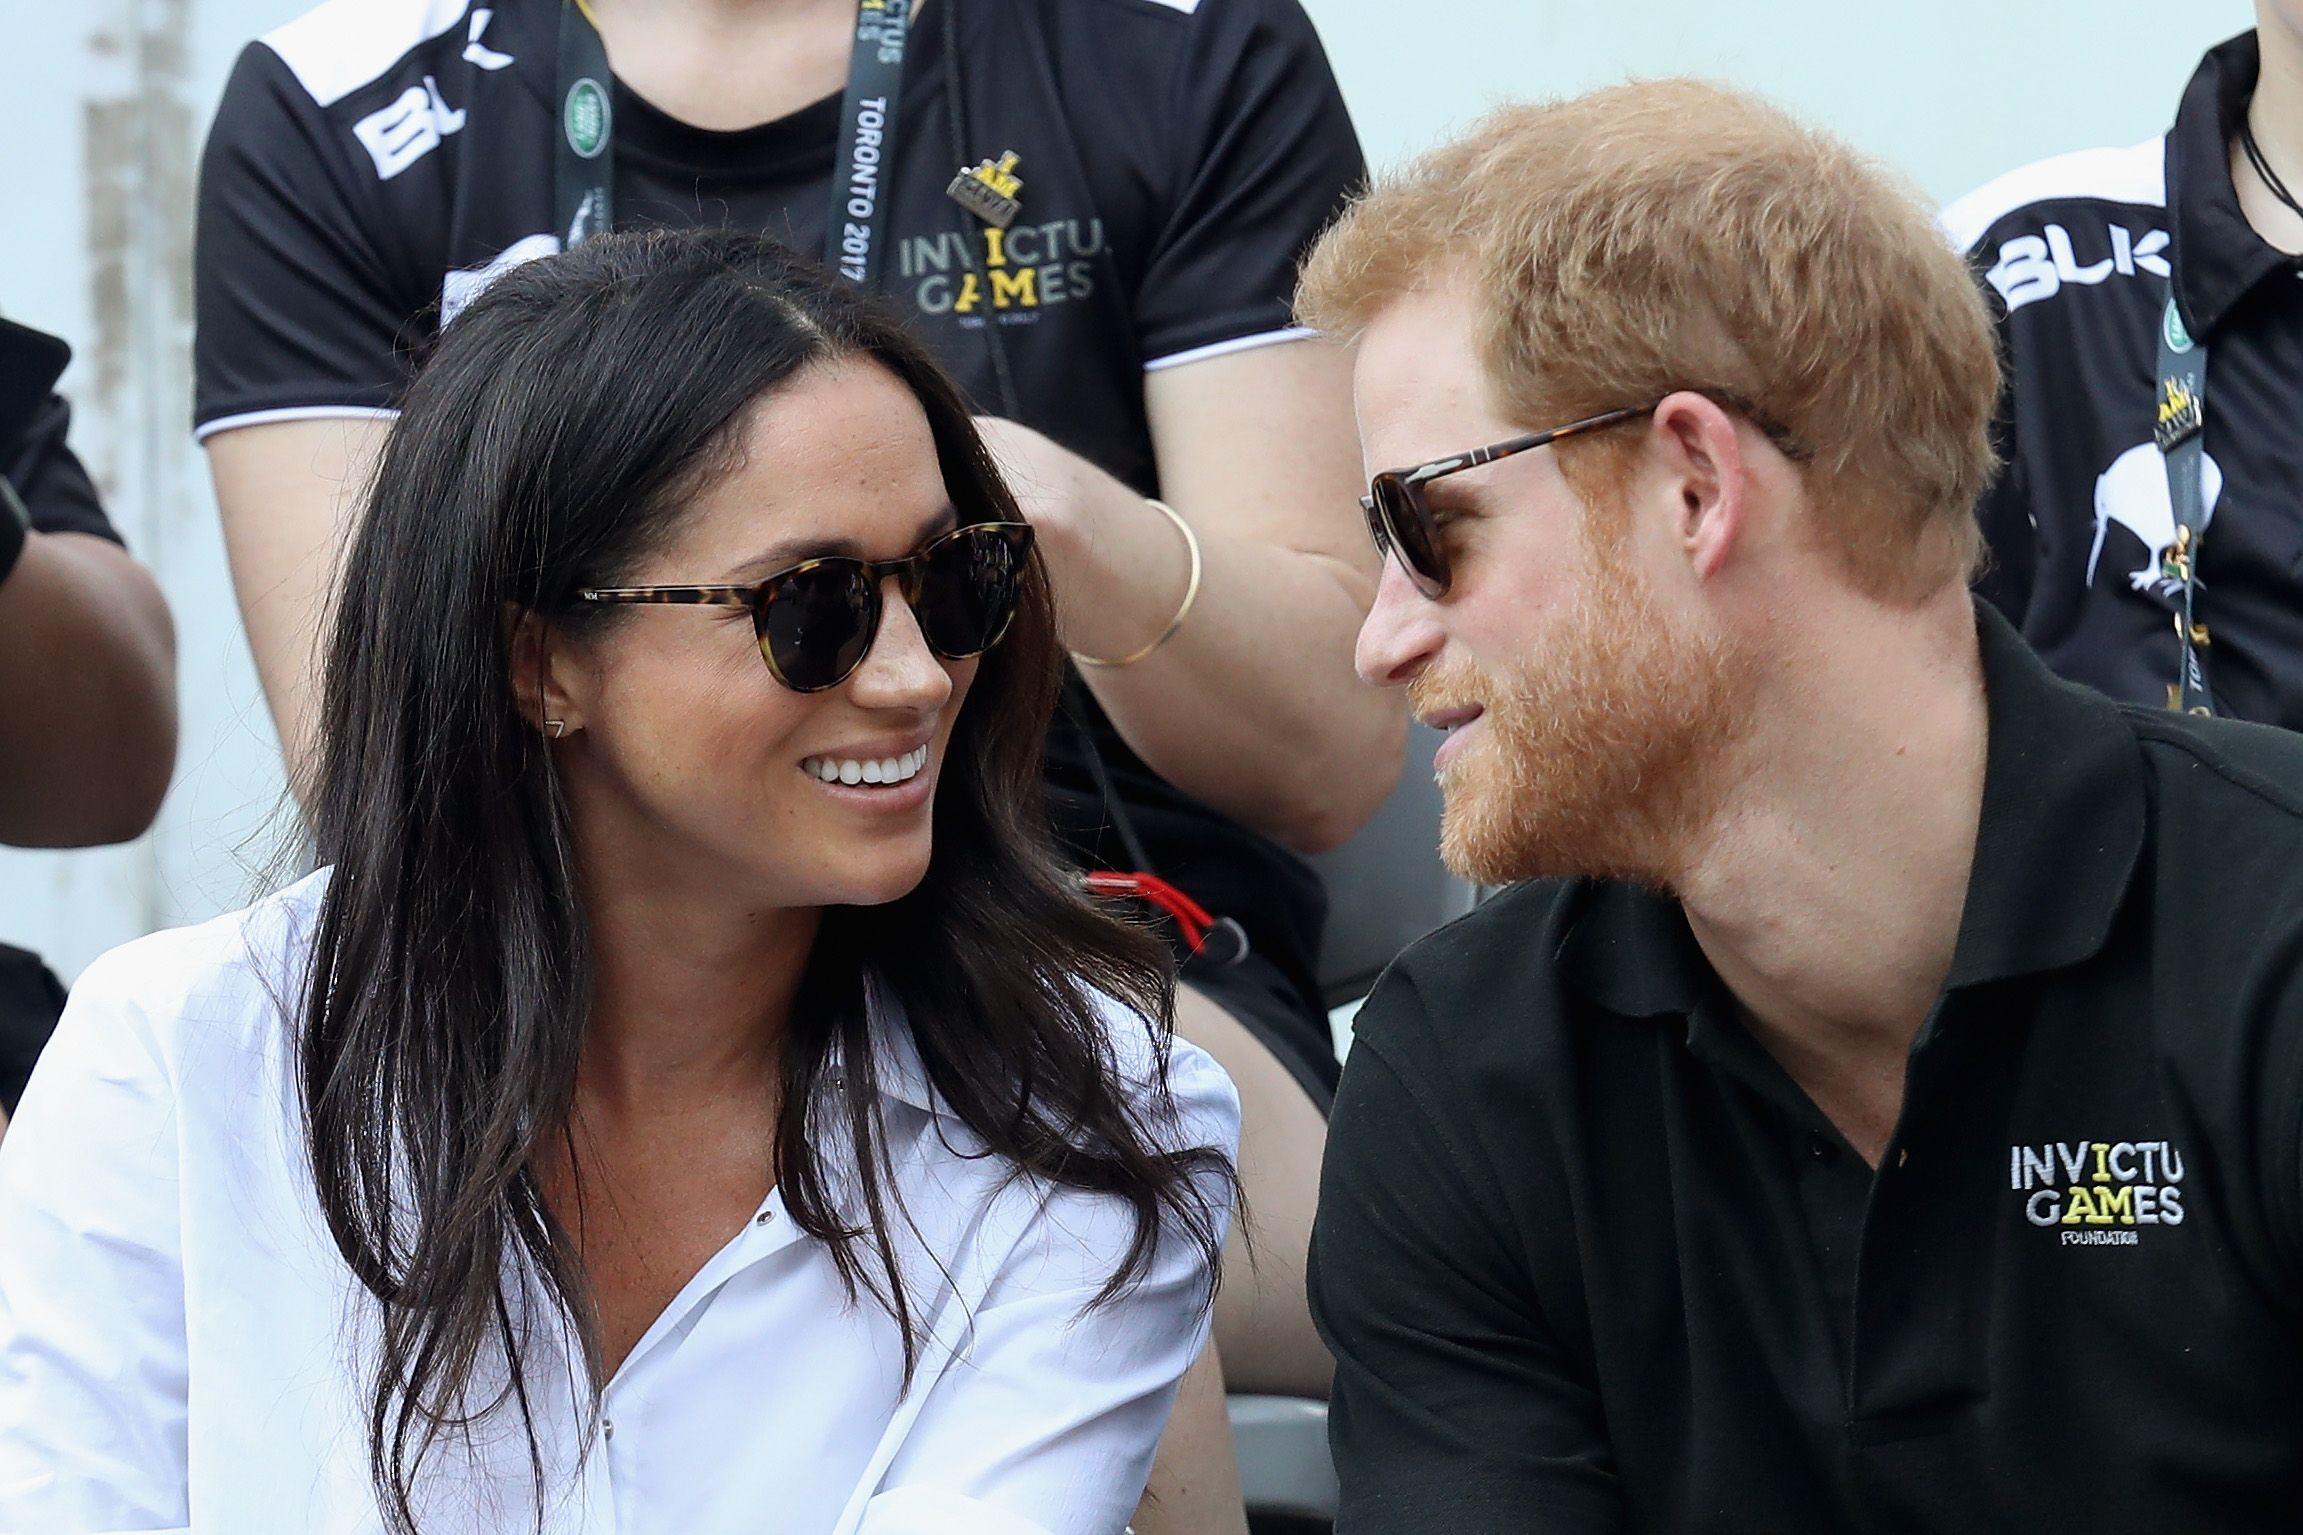 Meghan Markle and Prince Harry at the Invictus Games on September 25, 2017, in Toronto, Canada. | Source: Getty Images